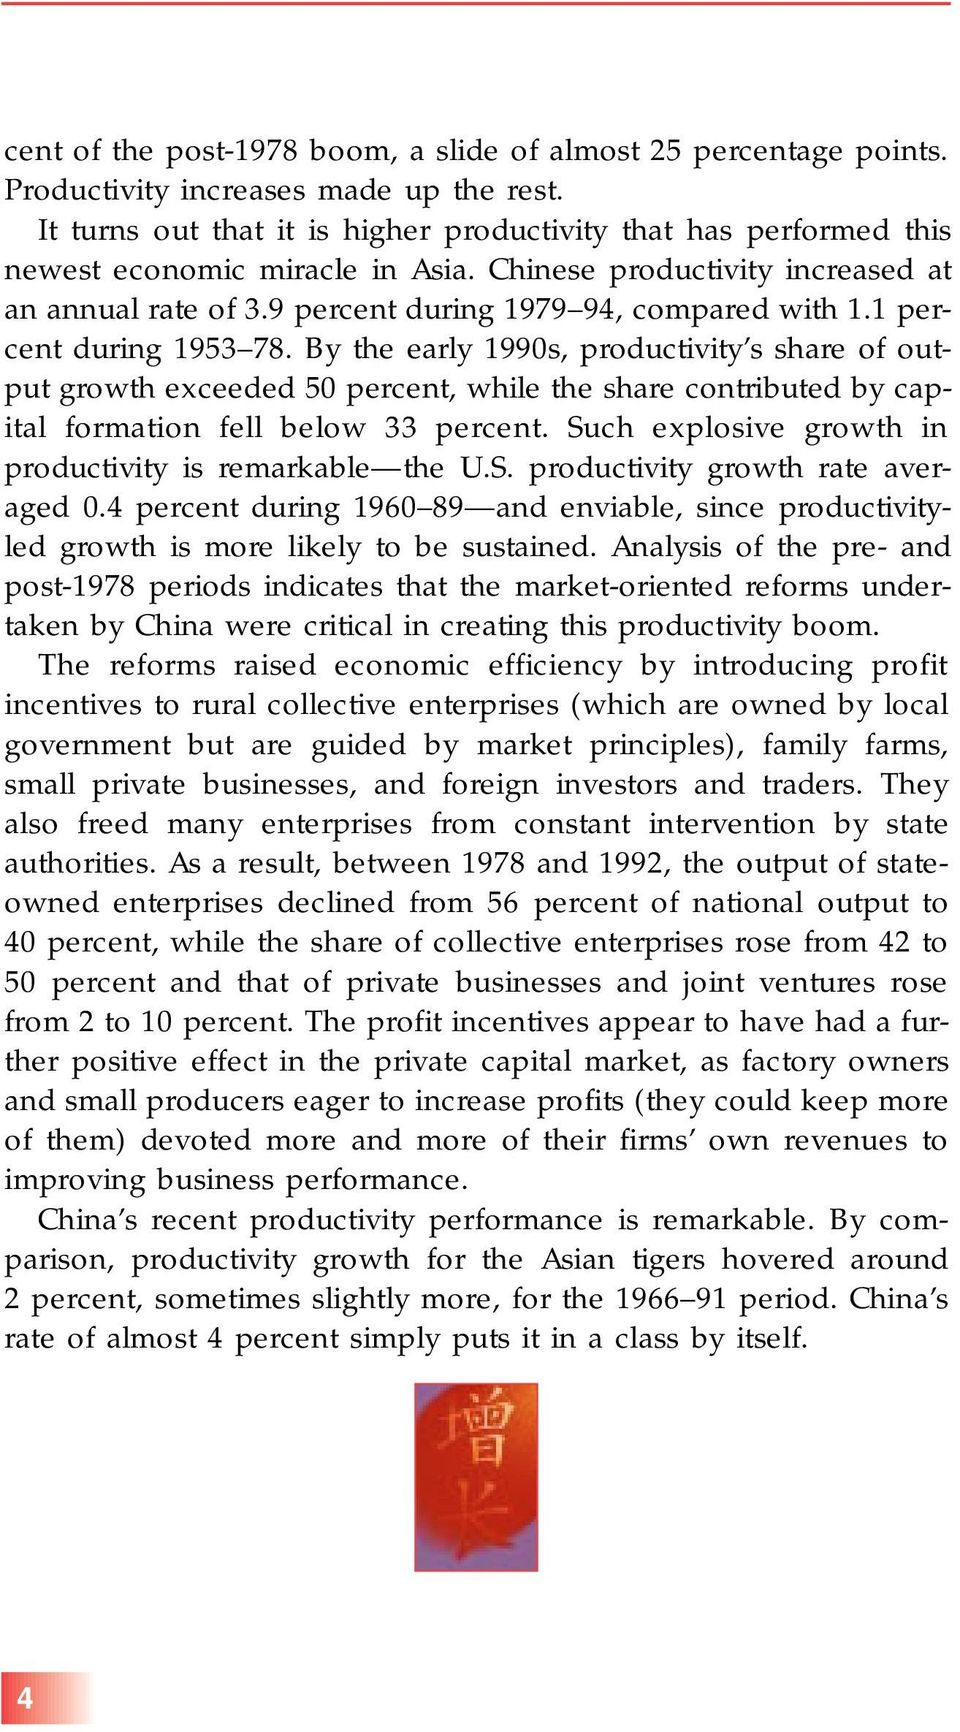 1 percent during 1953 78. By the early 1990s, productivity s share of output growth exceeded 50 percent, while the share contributed by capital formation fell below 33 percent.